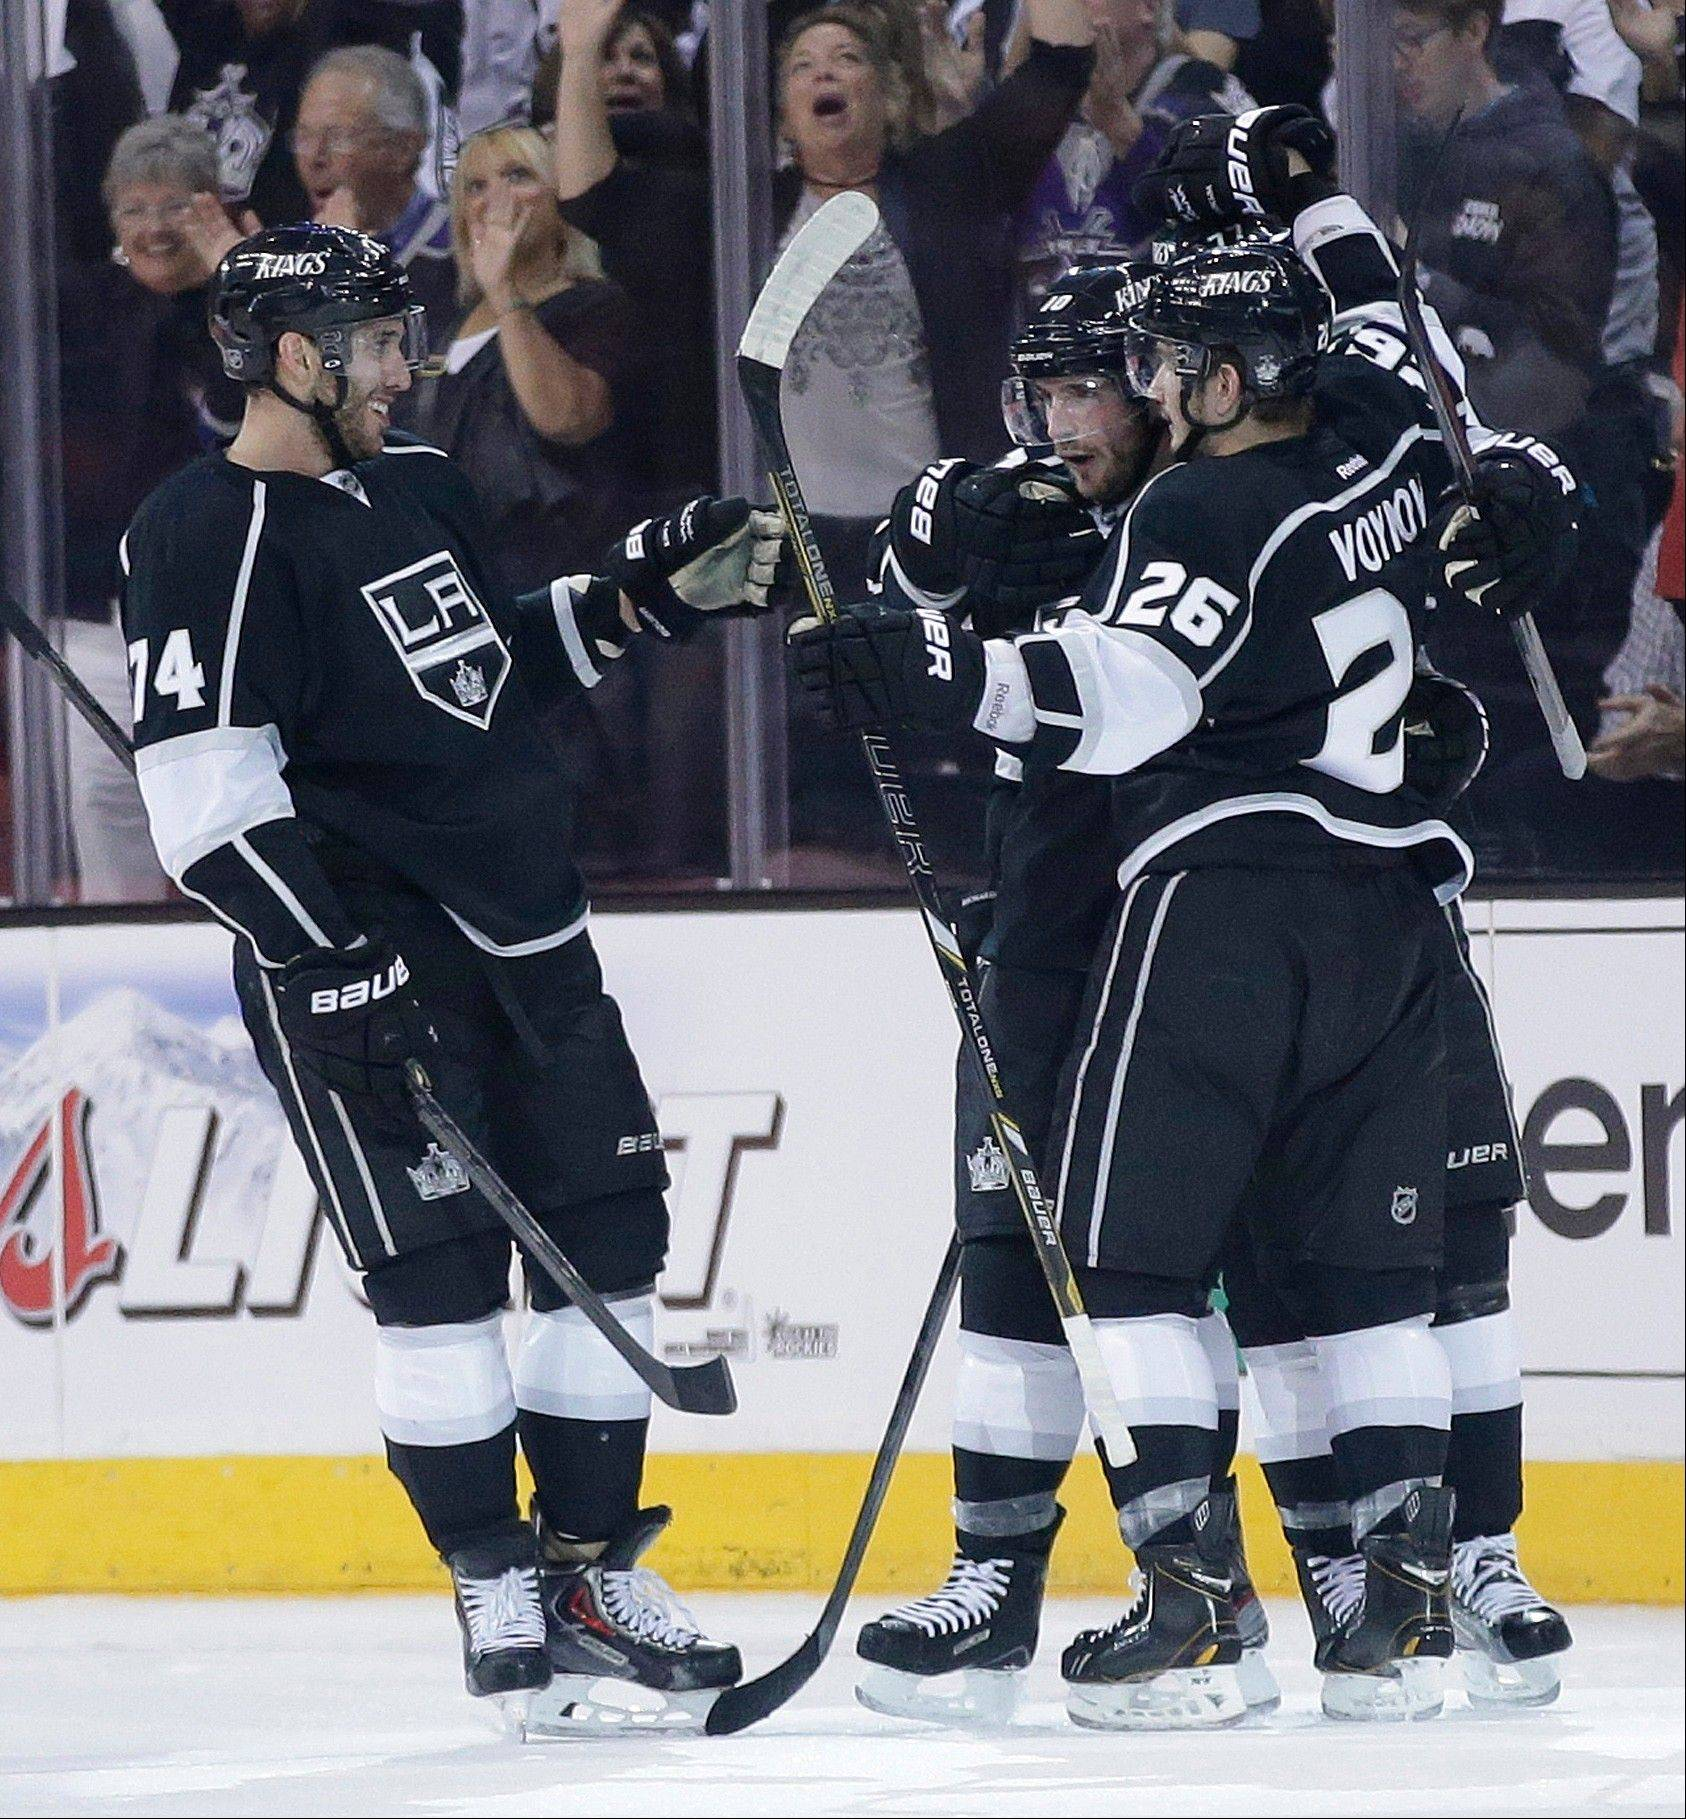 Los Angeles Kings' Slava Voynov (26) celebrates his first-period goal against the San Jose Sharks with teammates Dwight King, left, and Jeff Carter in Game 1 of a second-round NHL hockey Stanley Cup playoff series, in Los Angeles, Tuesday, May 14, 2013.